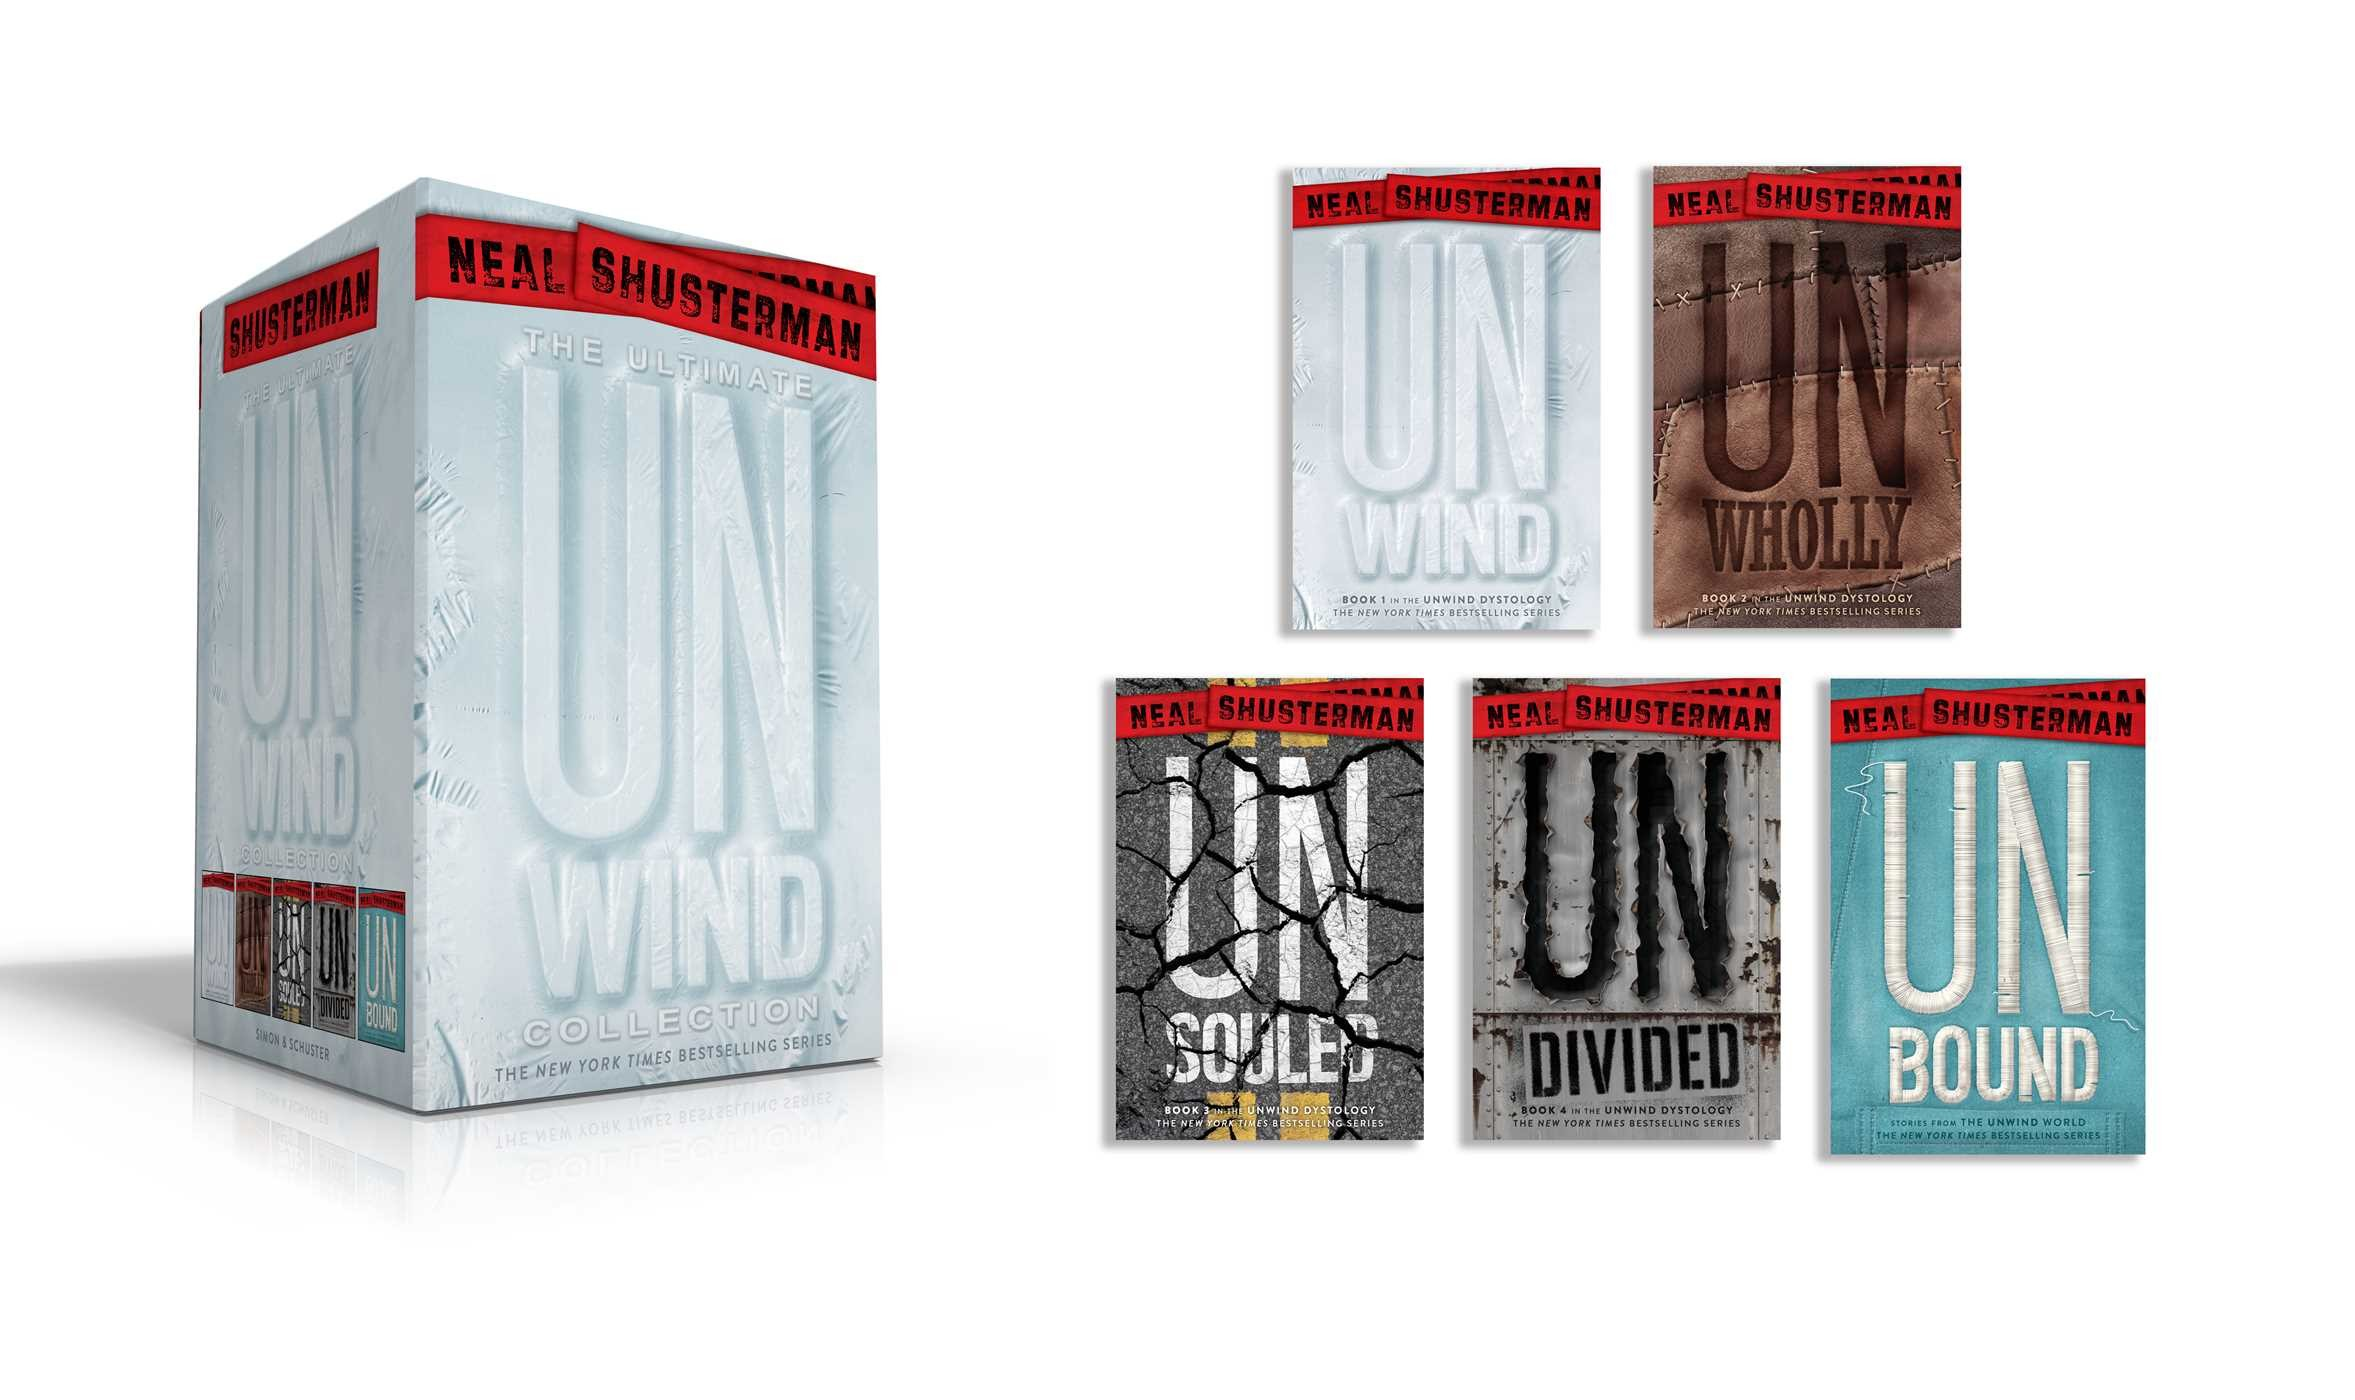 The ultimate unwind collection 9781481491815.in01